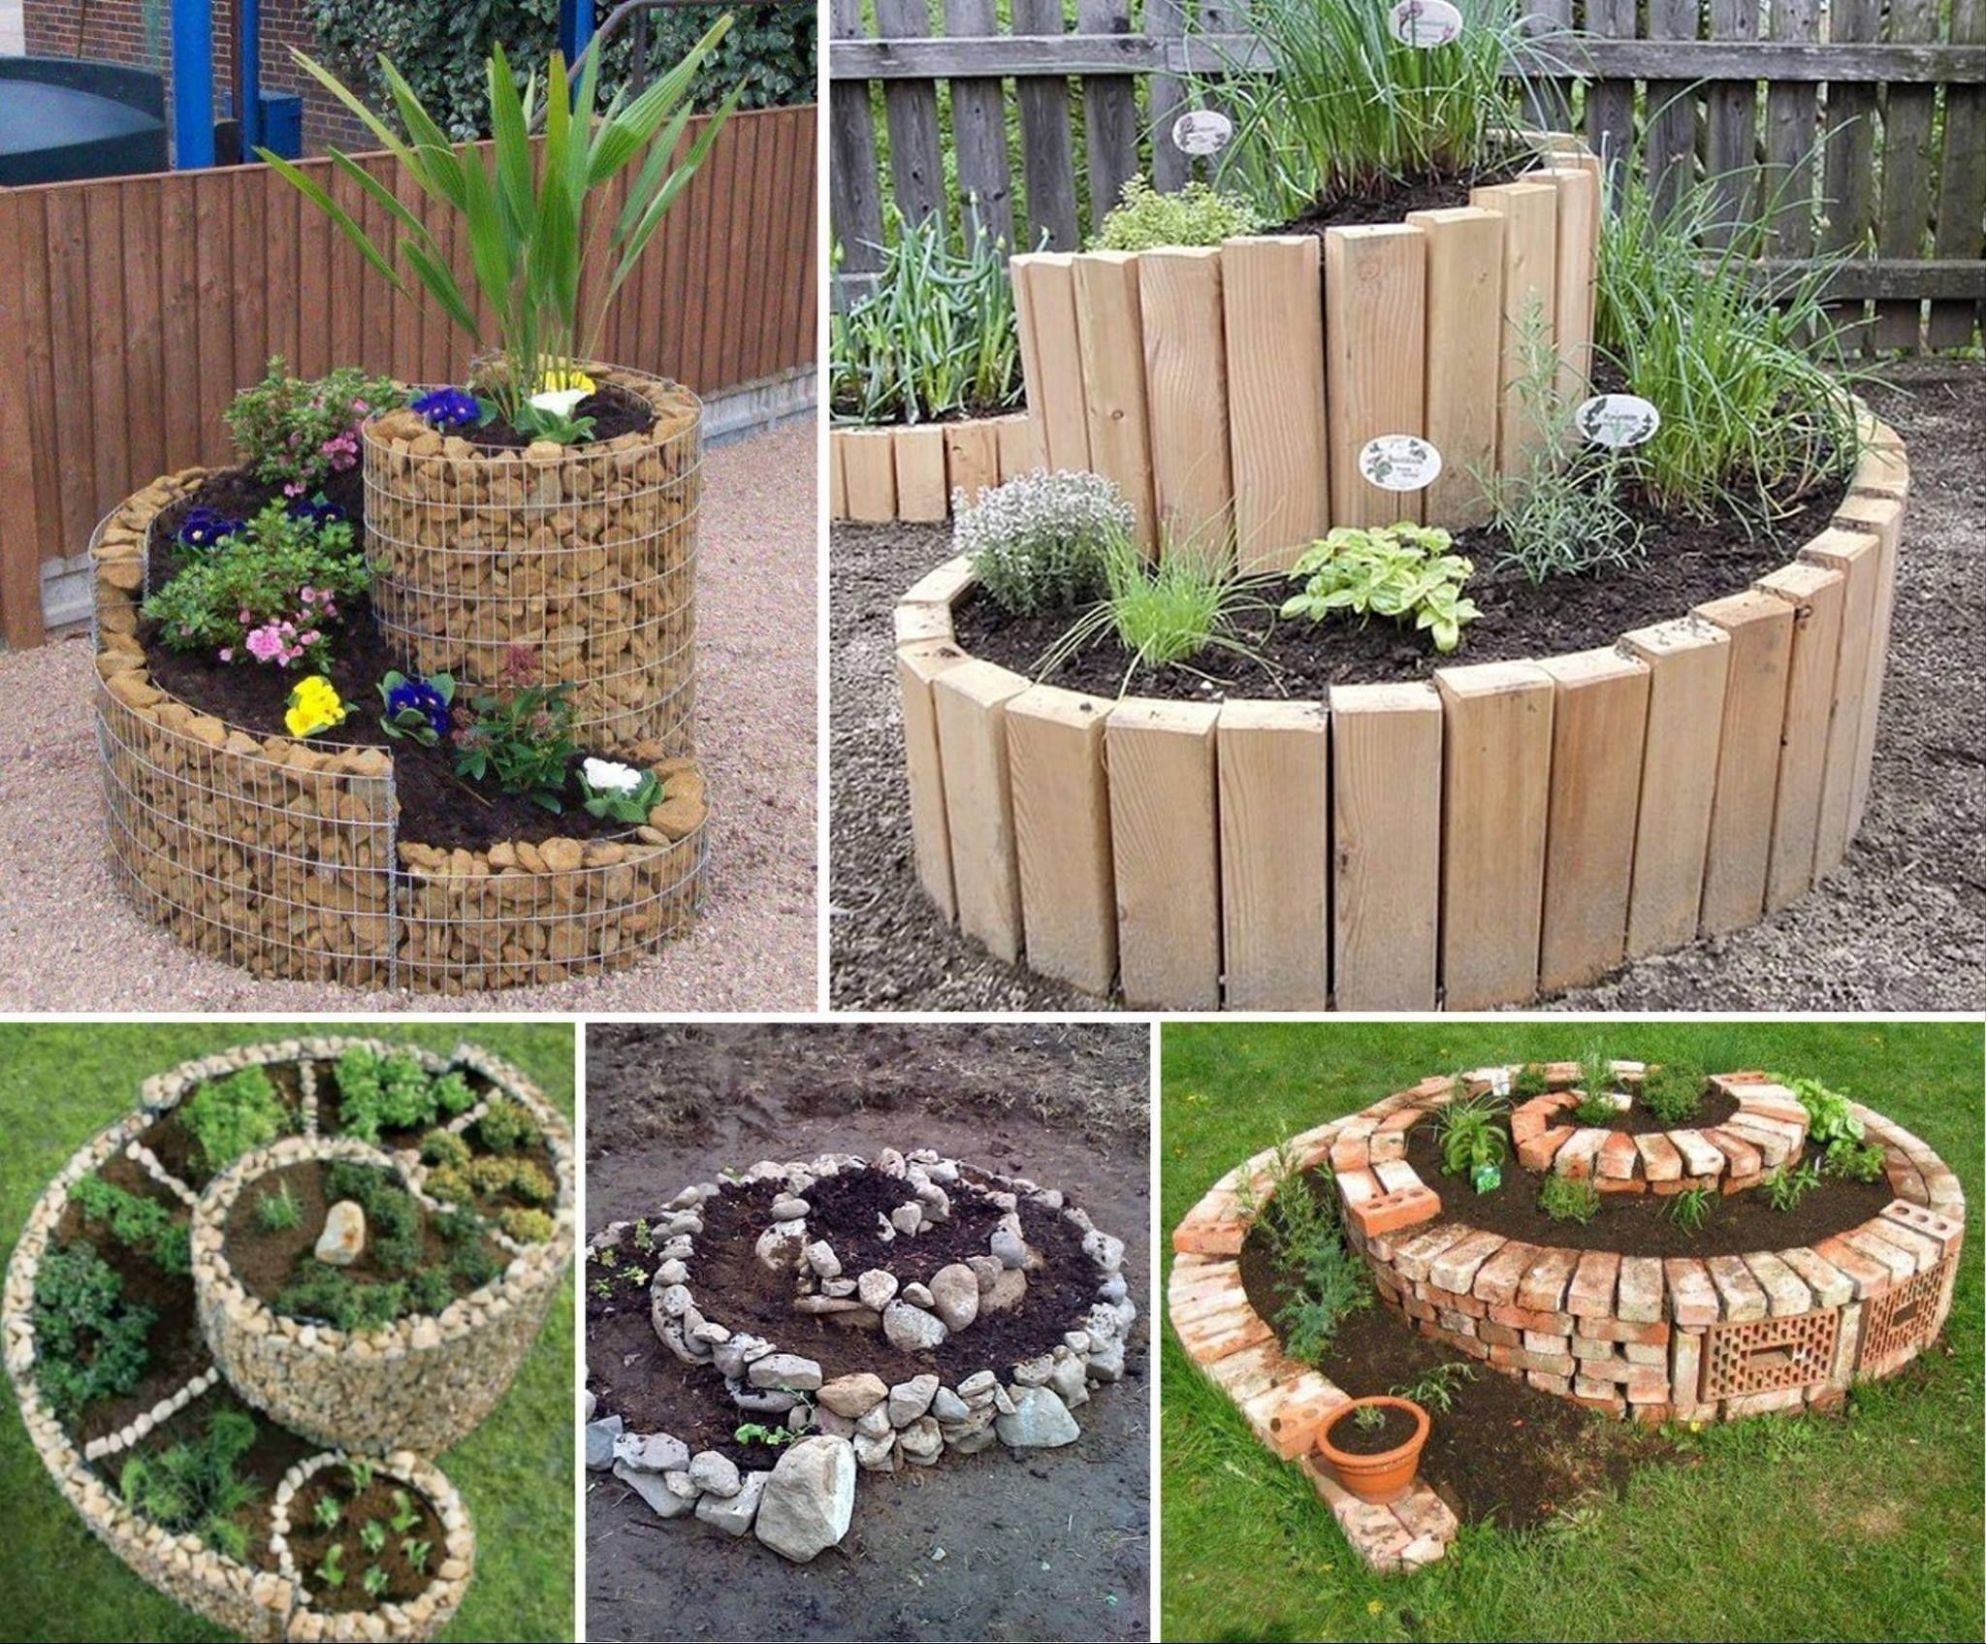 Deluxe Custom Inspiring Diy Herb Gardens That Can Make Your House ..